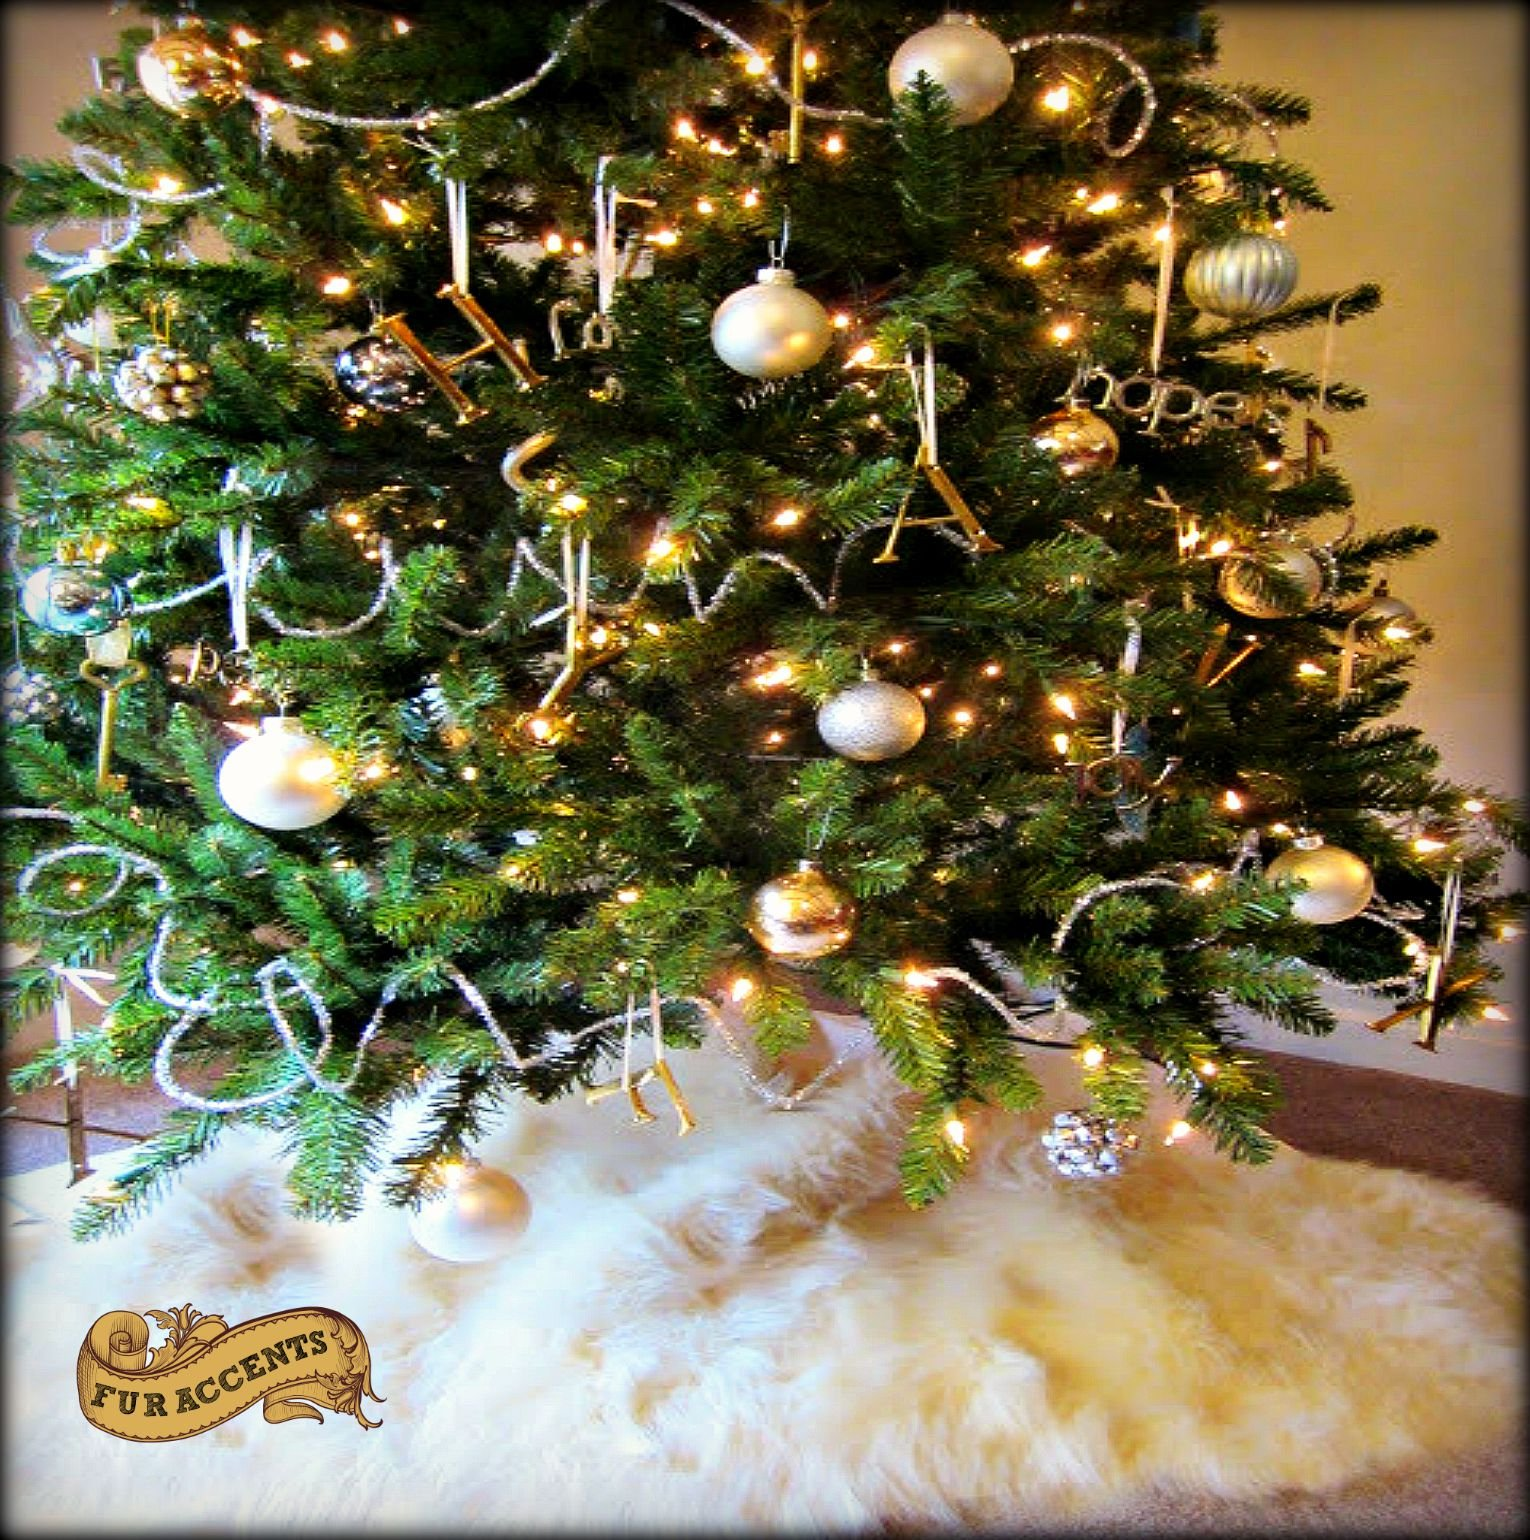 Classic Faux Fur Christmas Tree Skirt - Shaggy Shag Faux Sheepskin Round - White or Off White by Fur Accents - USA (8' Round, Off White)